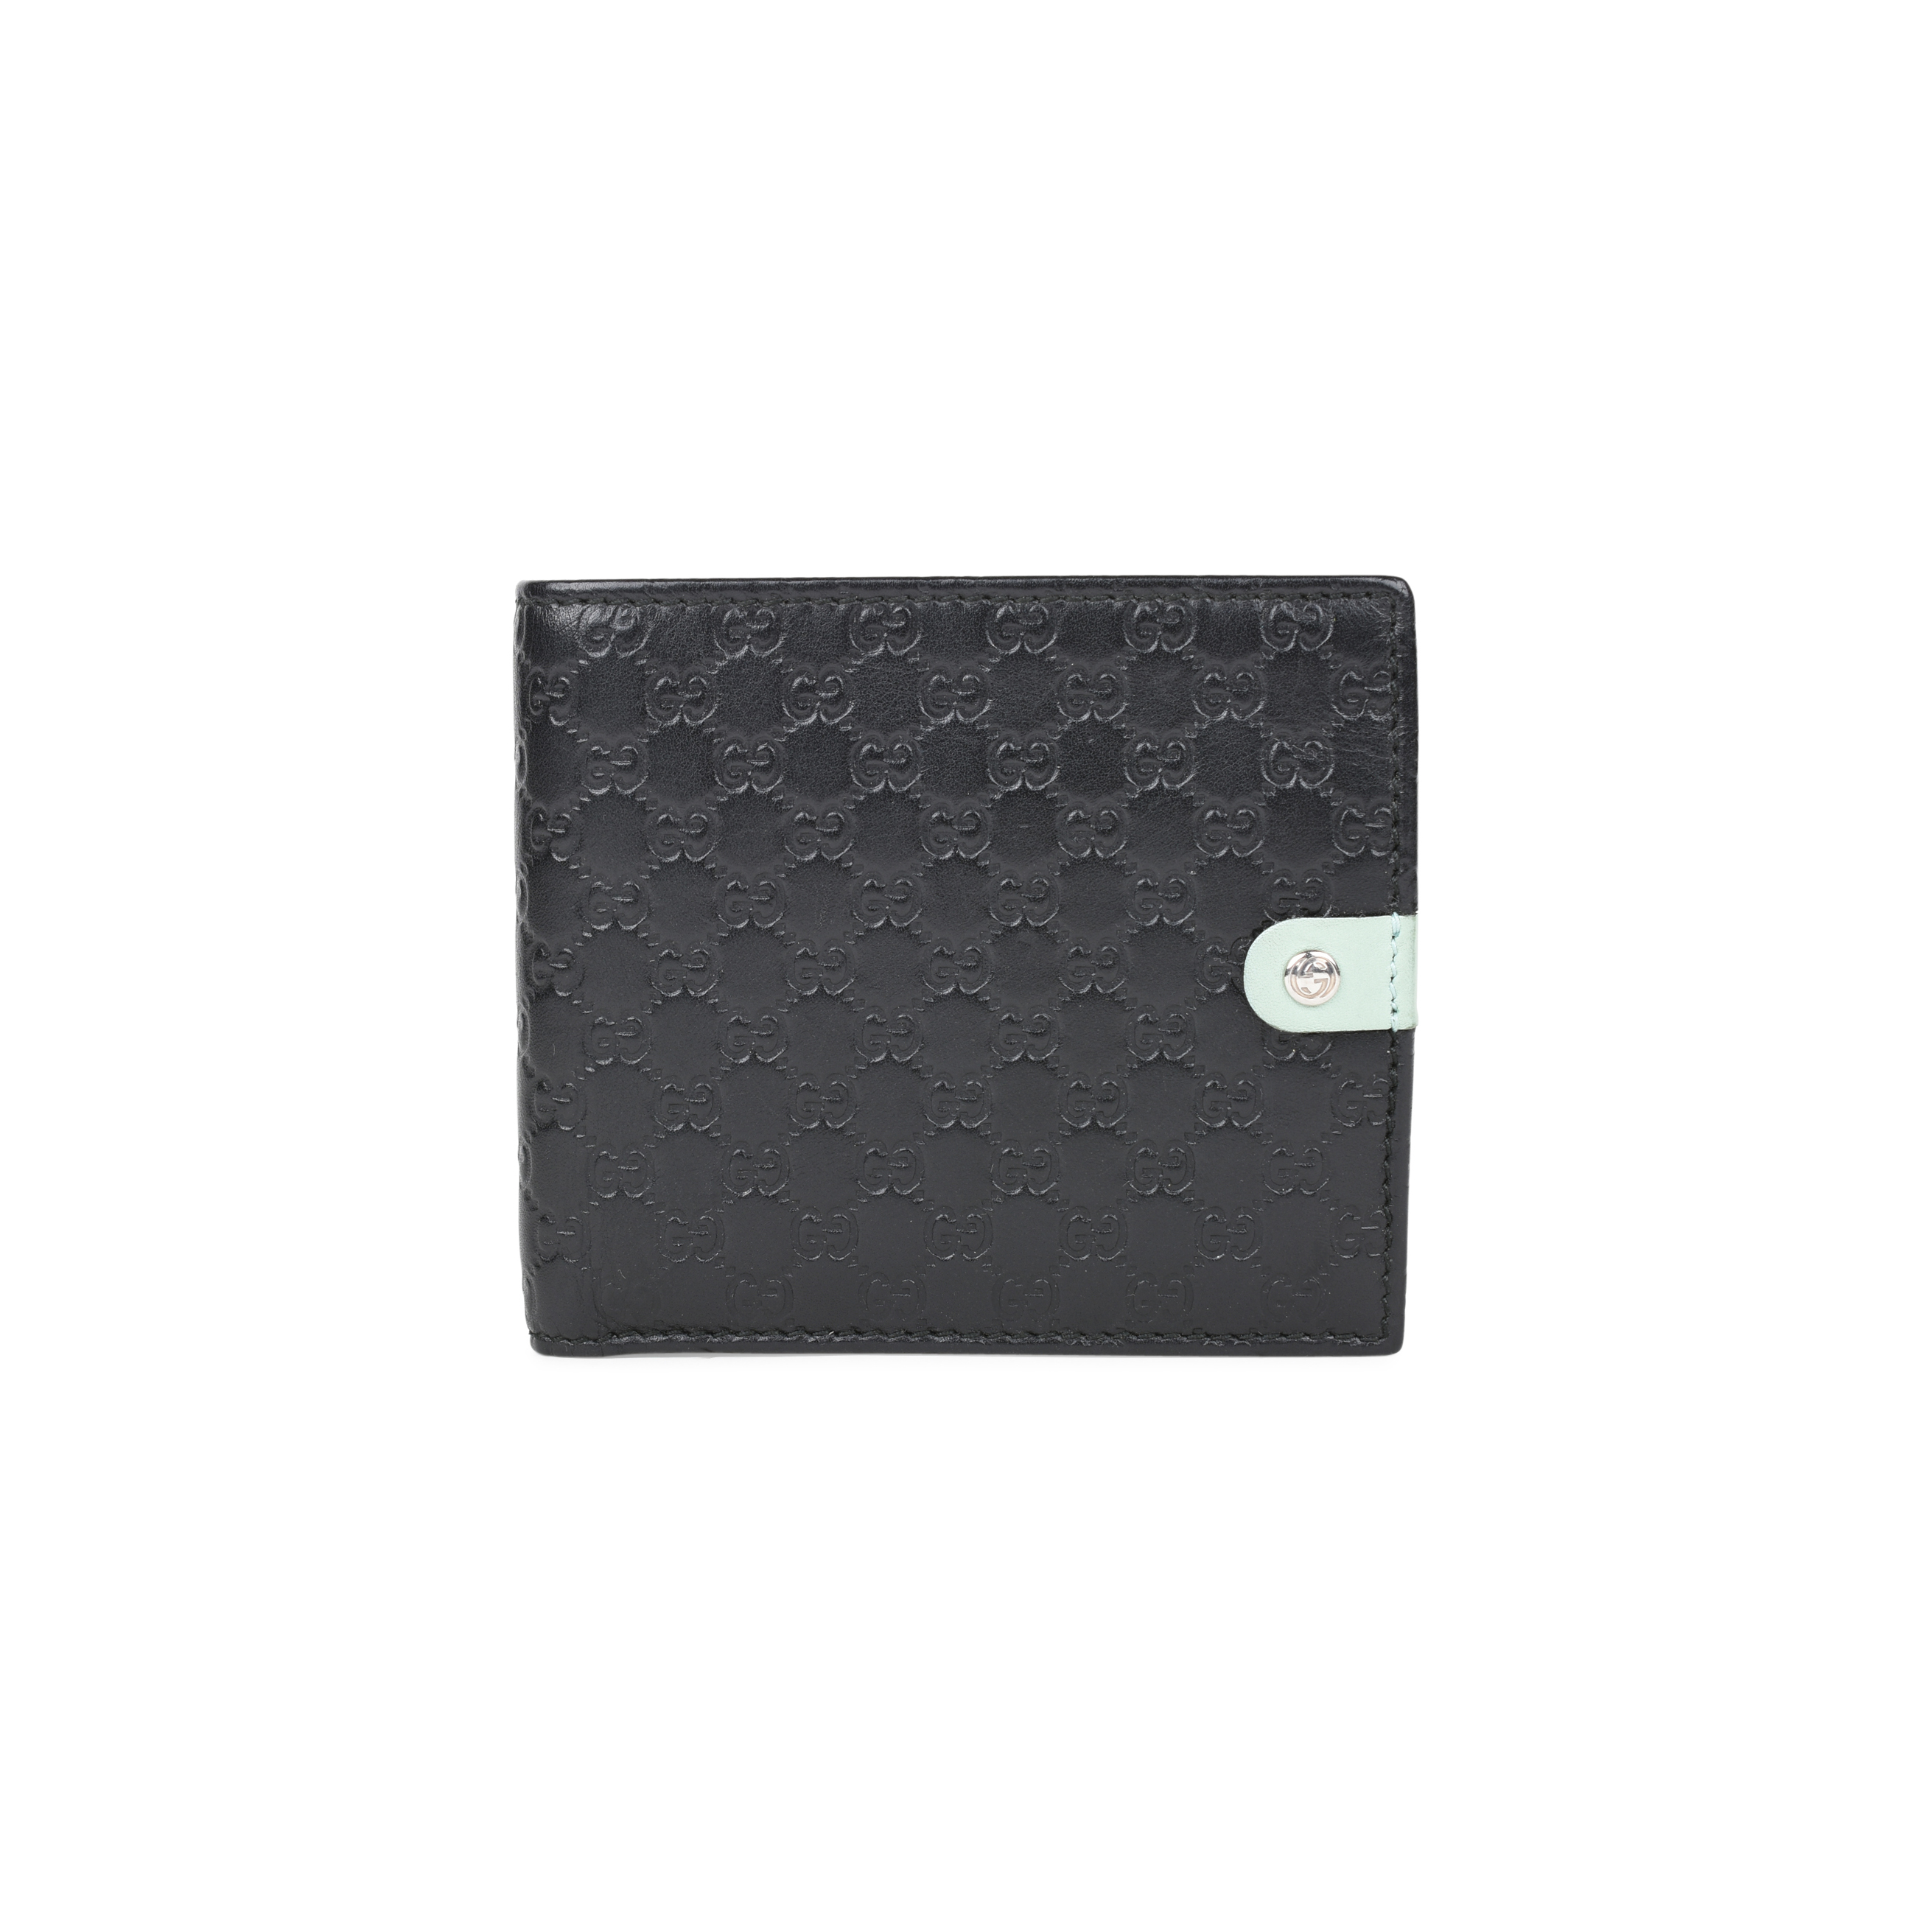 d064134df70 Authentic Second Hand Gucci Microguccissima Leather Wallet With Coin Pocket  (PSS-394-00022)